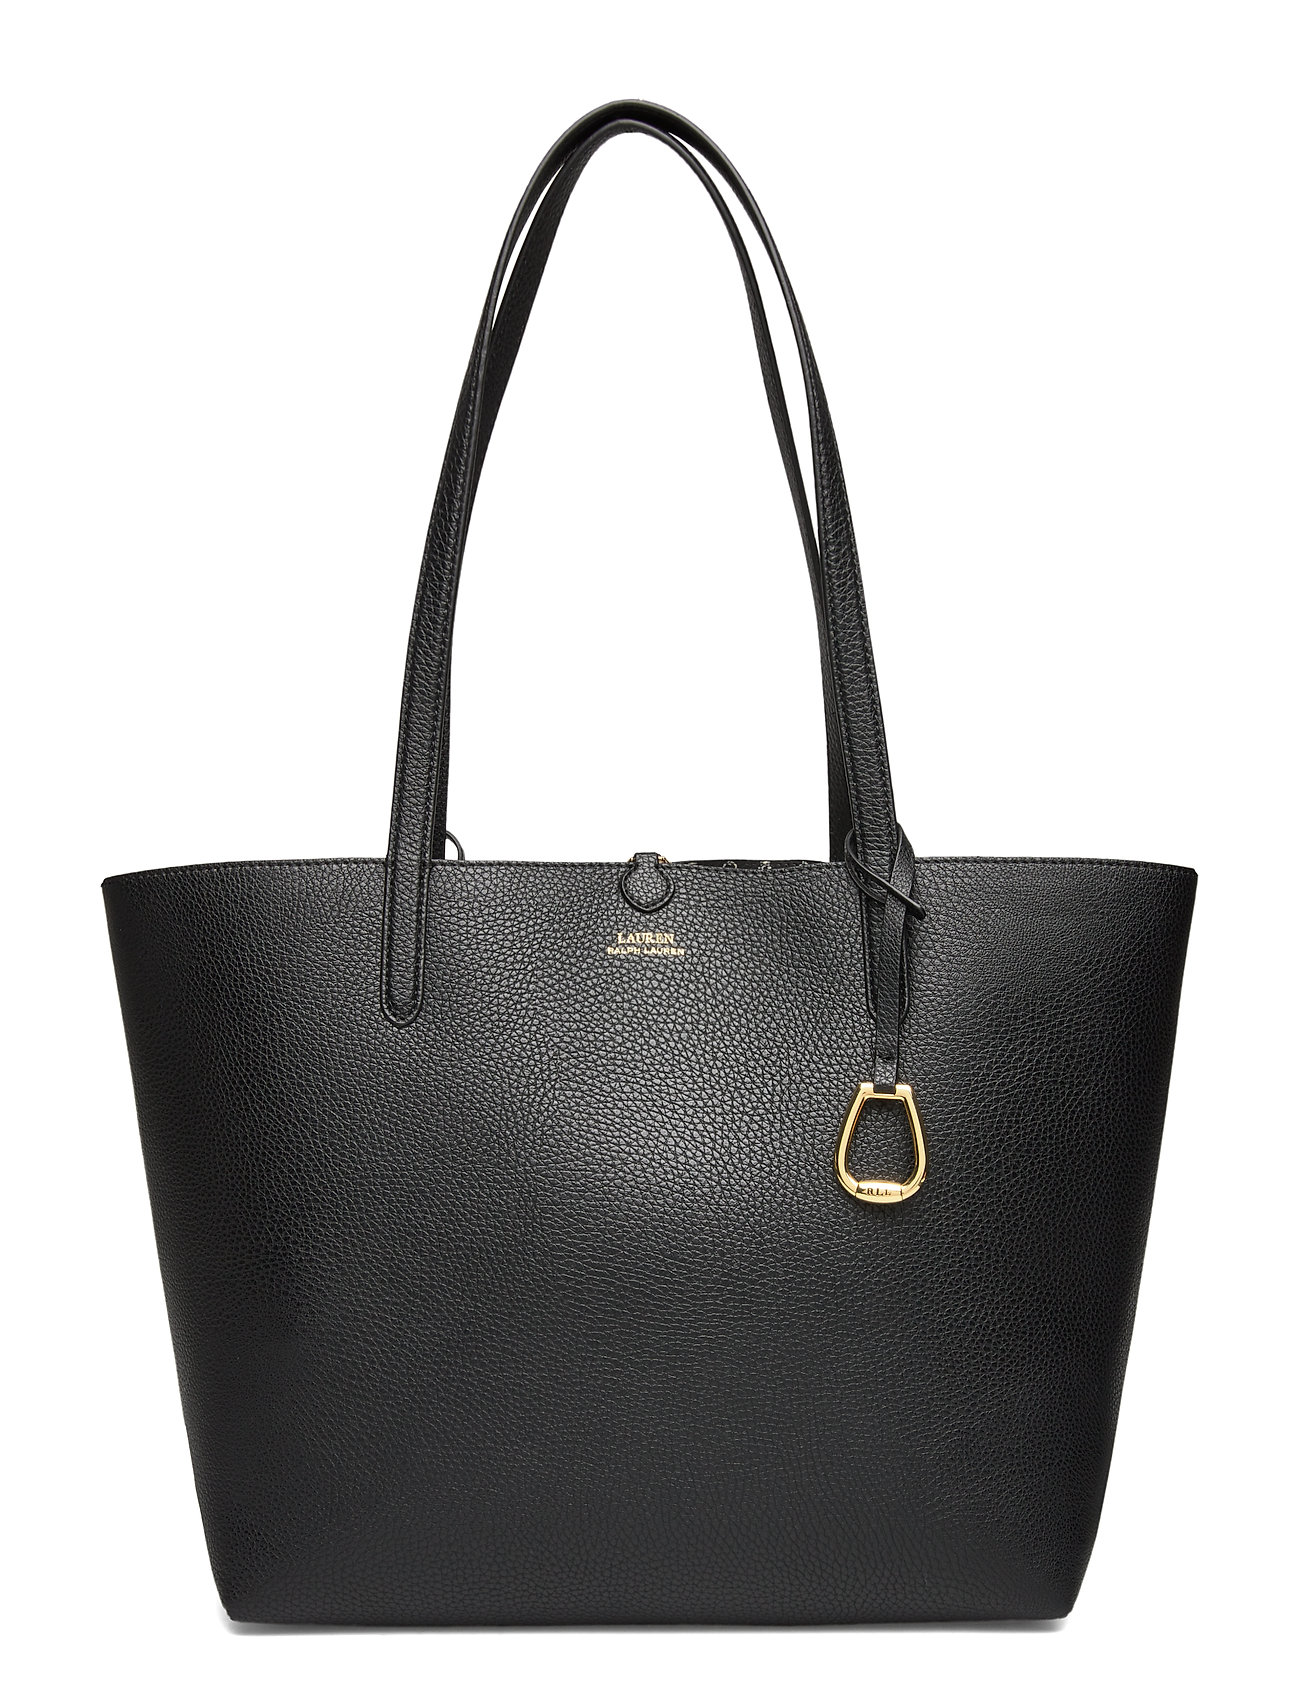 Lauren Ralph Lauren Faux-Leather Reversible Tote - BLACK/BLACK MINI